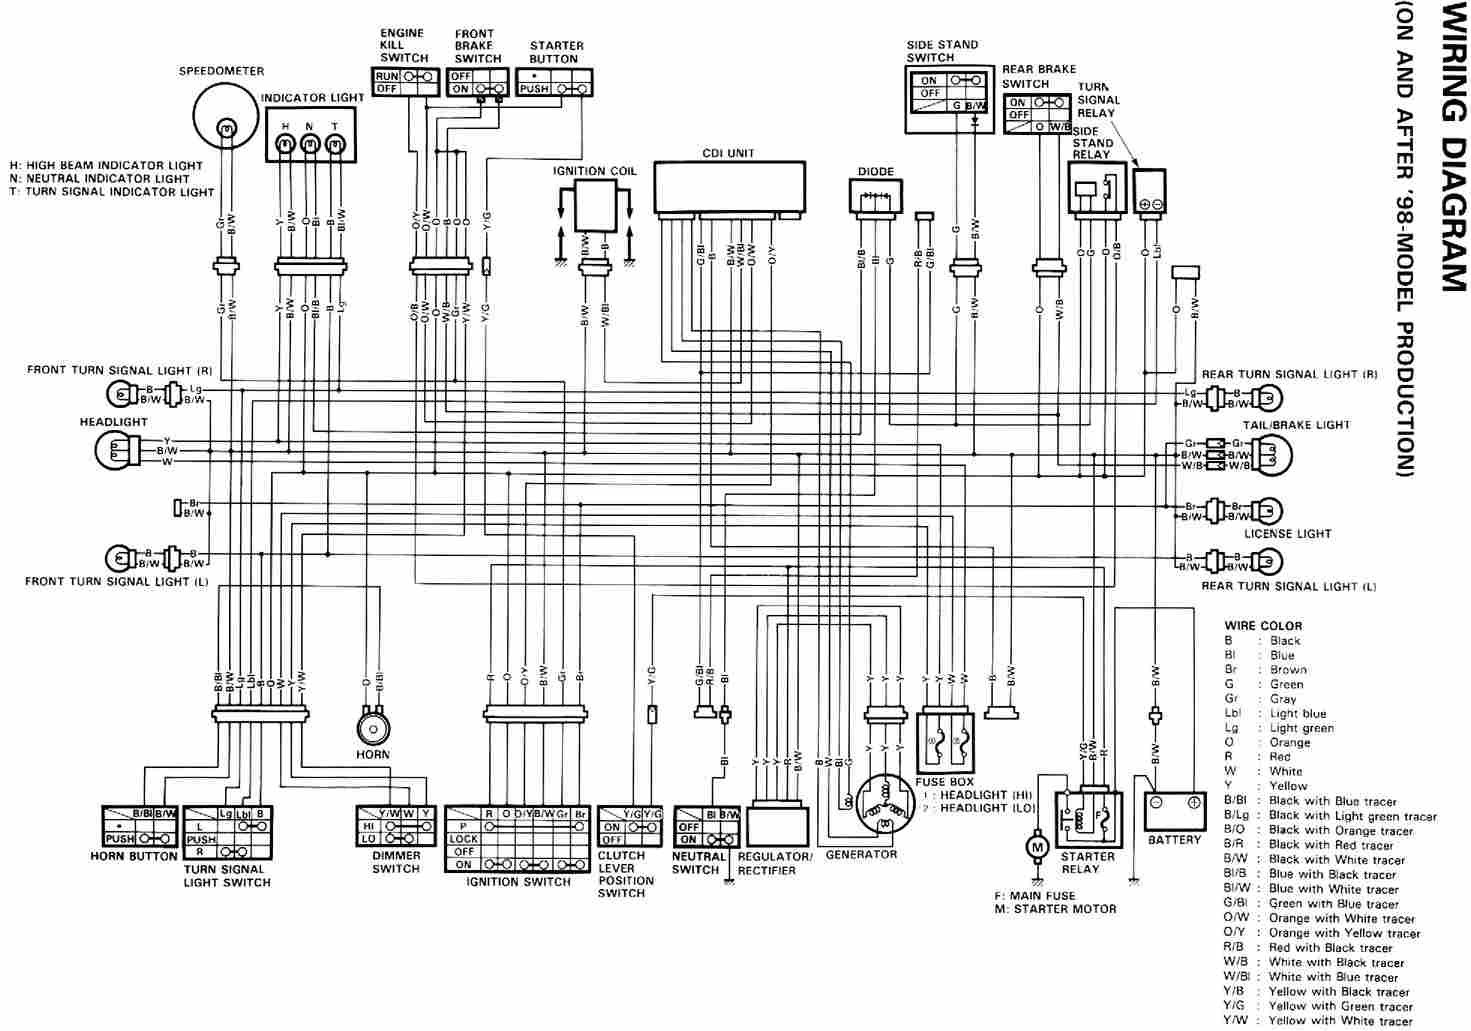 Vl800 Wiring Diagram Auto Electrical De303 Suzuki Dr650 1998 Motorcycle